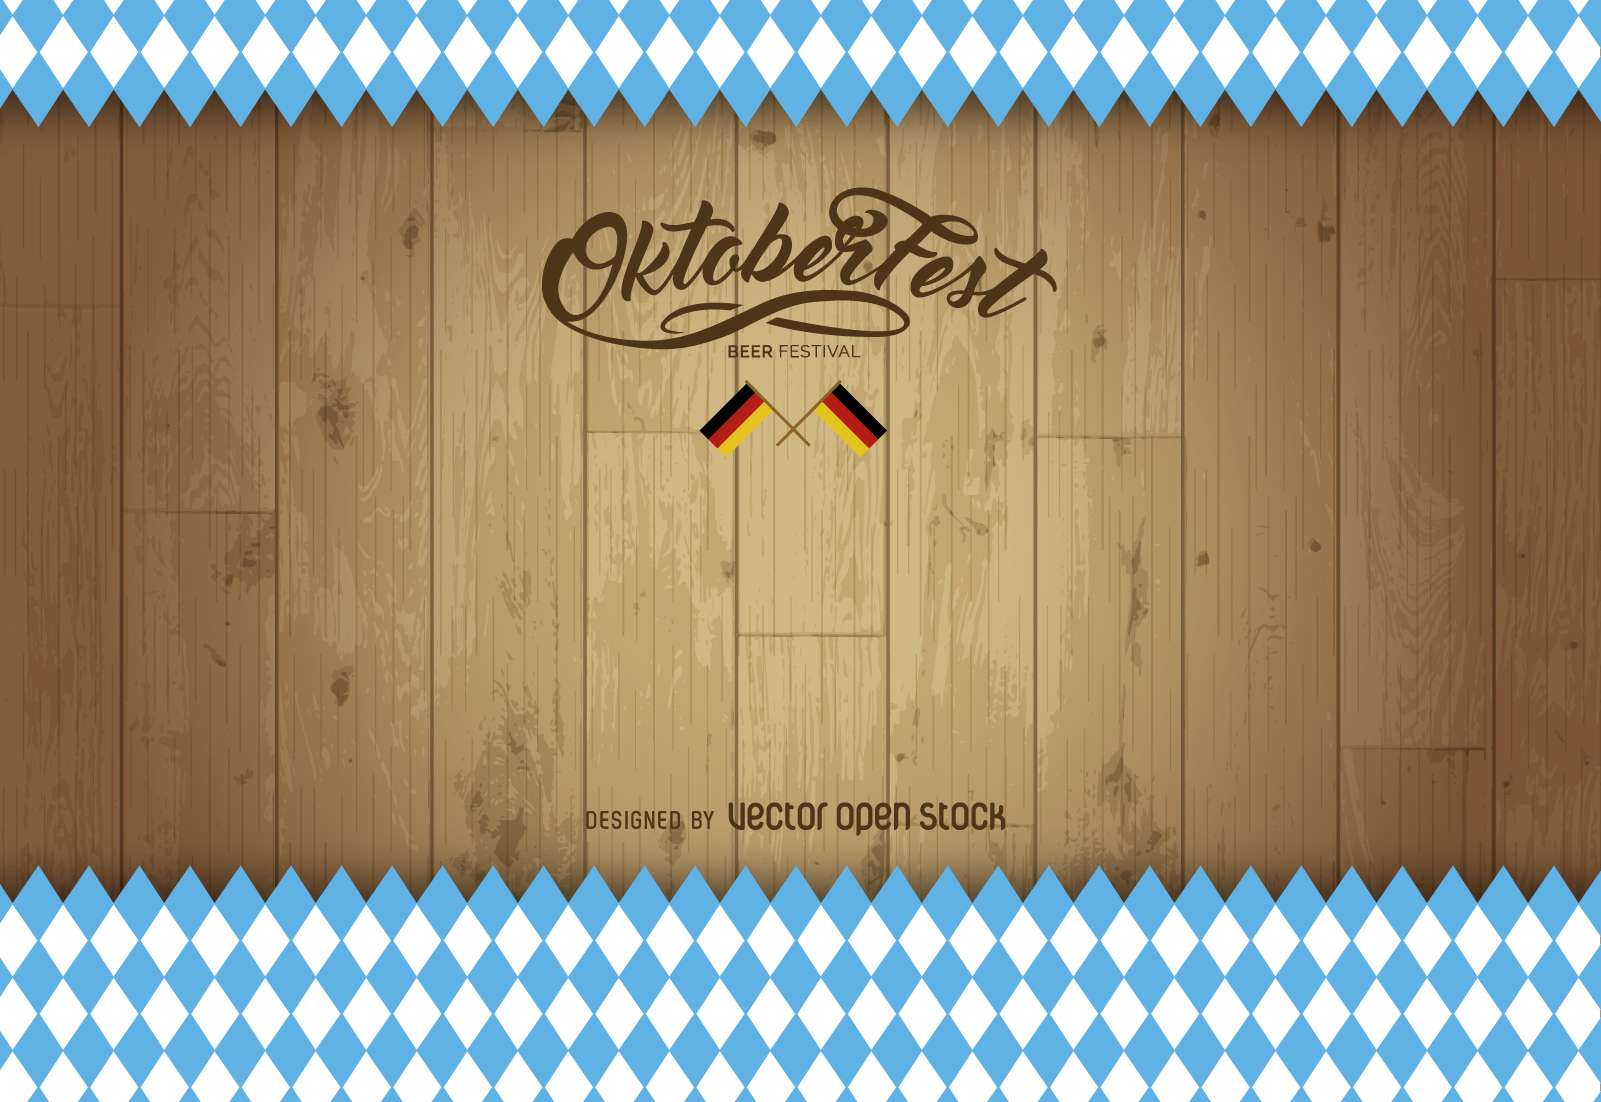 Free download Oktoberfest wood background Vector download